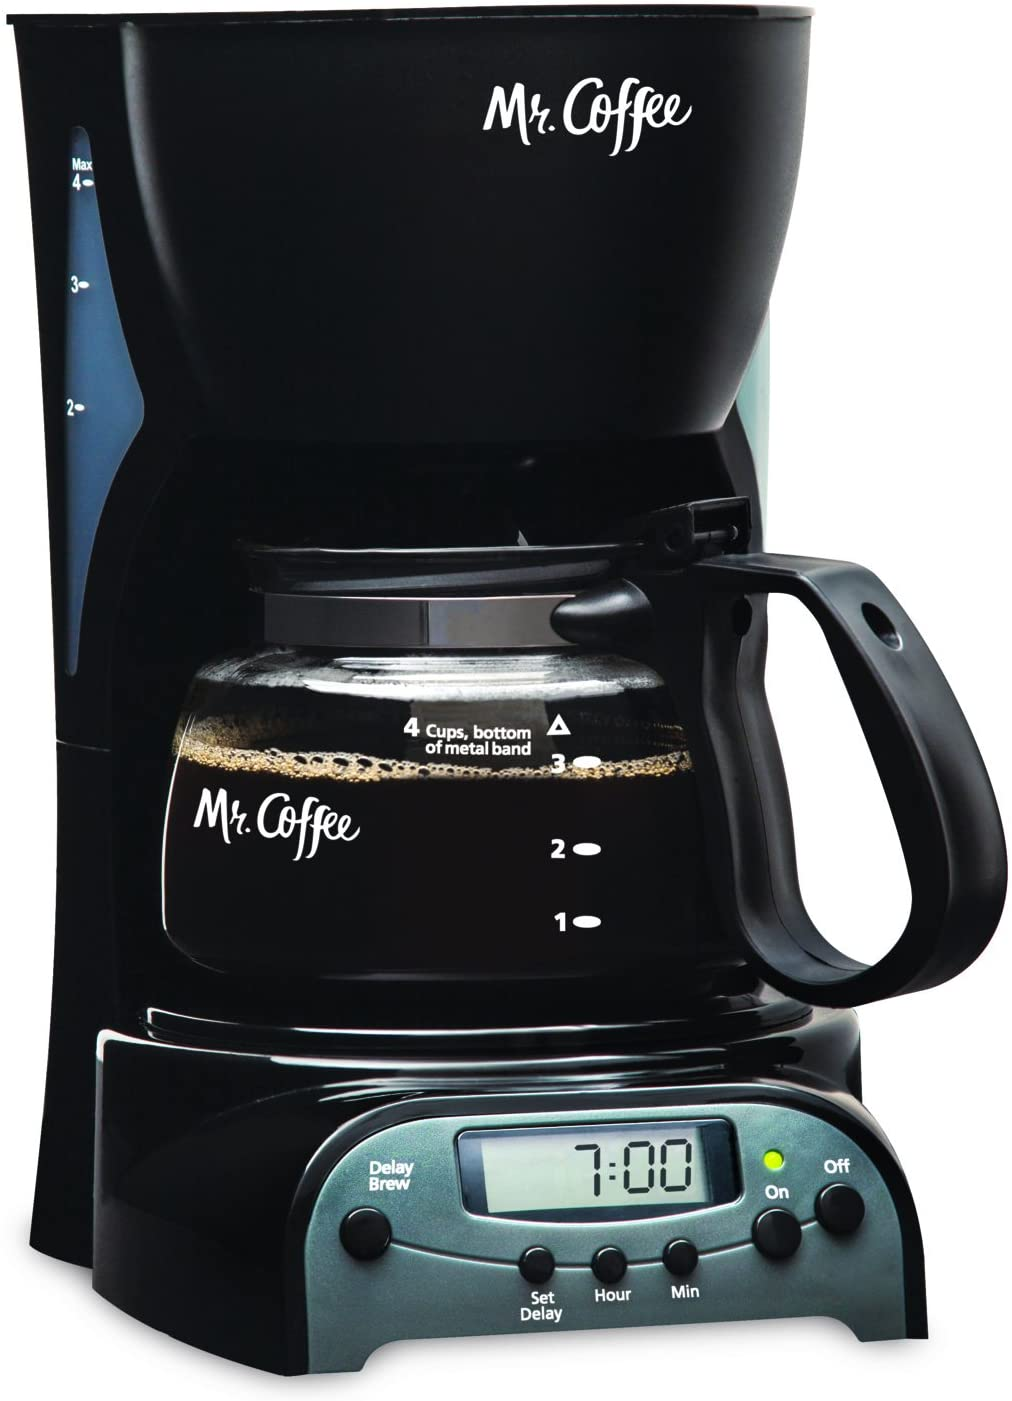 Mr. Coffee DRX5 Programmable Coffee Maker